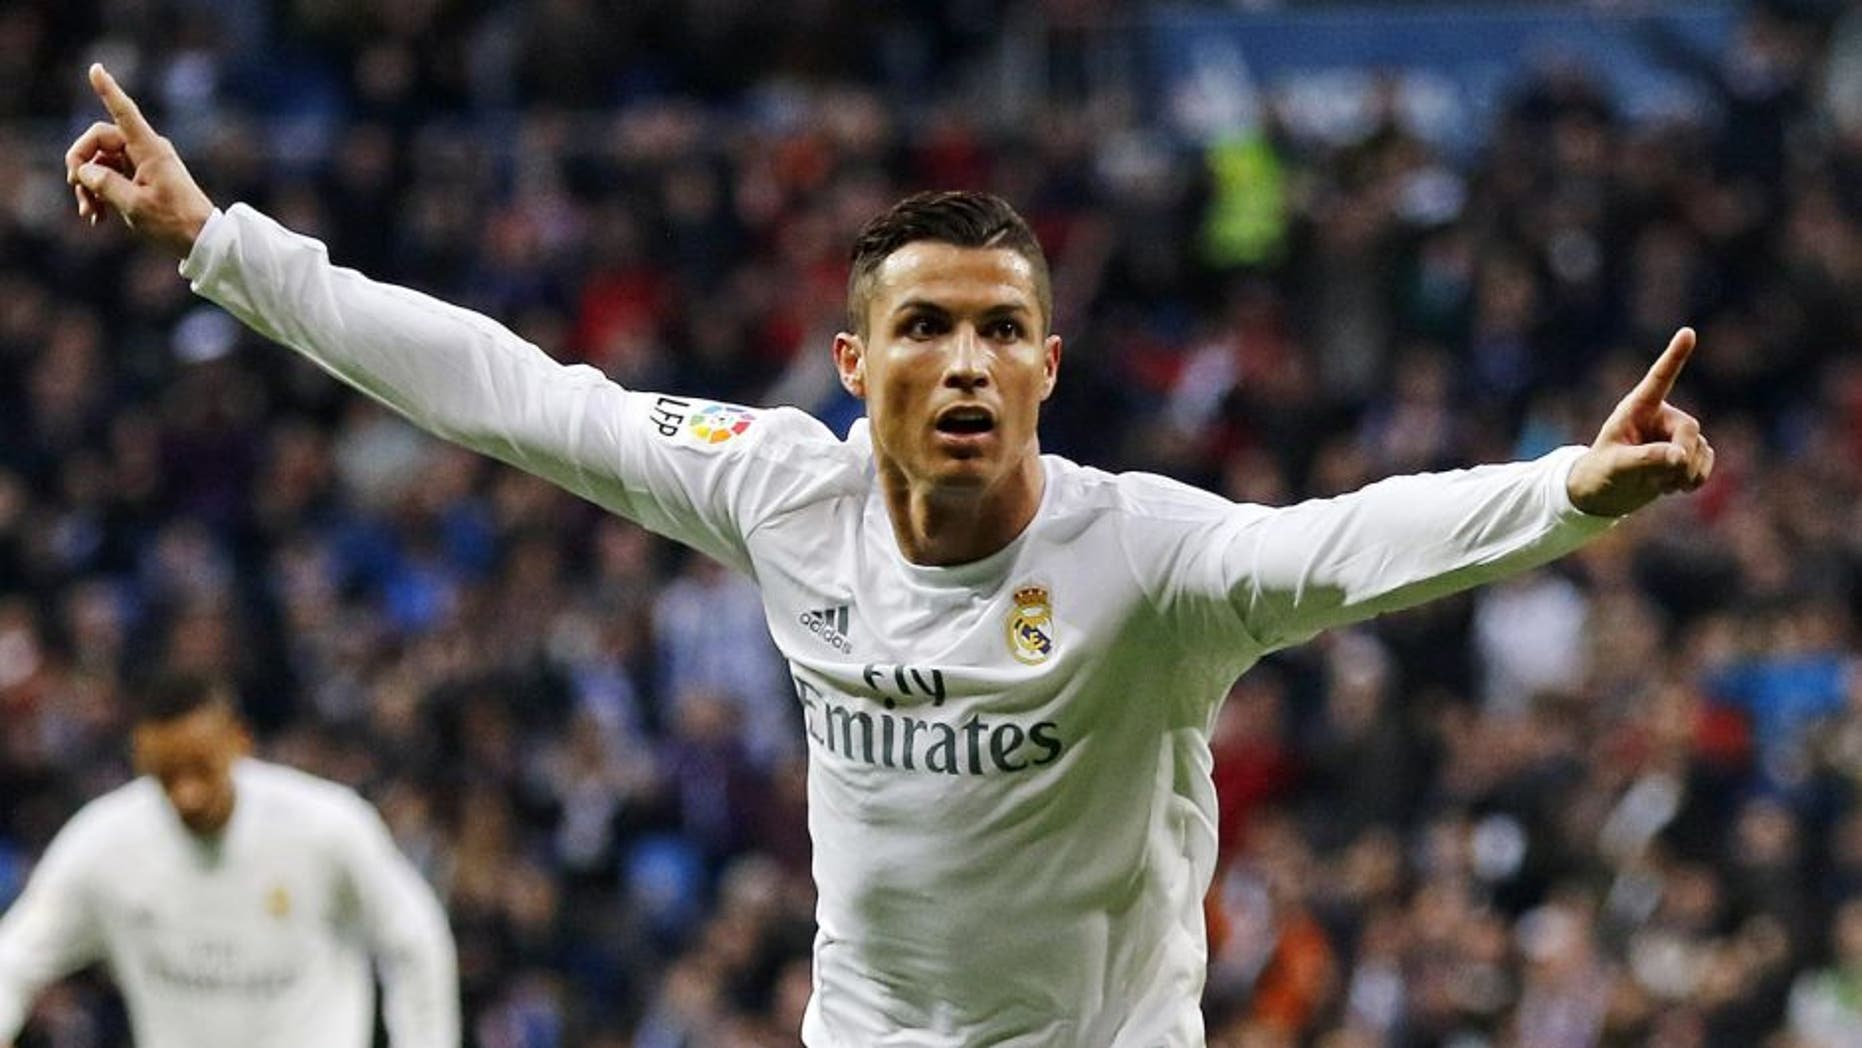 MADRID, SPAIN - DECEMBER 30: Cristiano Ronaldo of Real Madrid celebrates after scoring his team's second goal during the La Liga match between Real Madrid CF and Real Sociedad at Estadio Santiago Bernabeu on December 30, 2015 in Madrid, Spain. (Photo by Angel Martinez/Real Madrid via Getty Images)